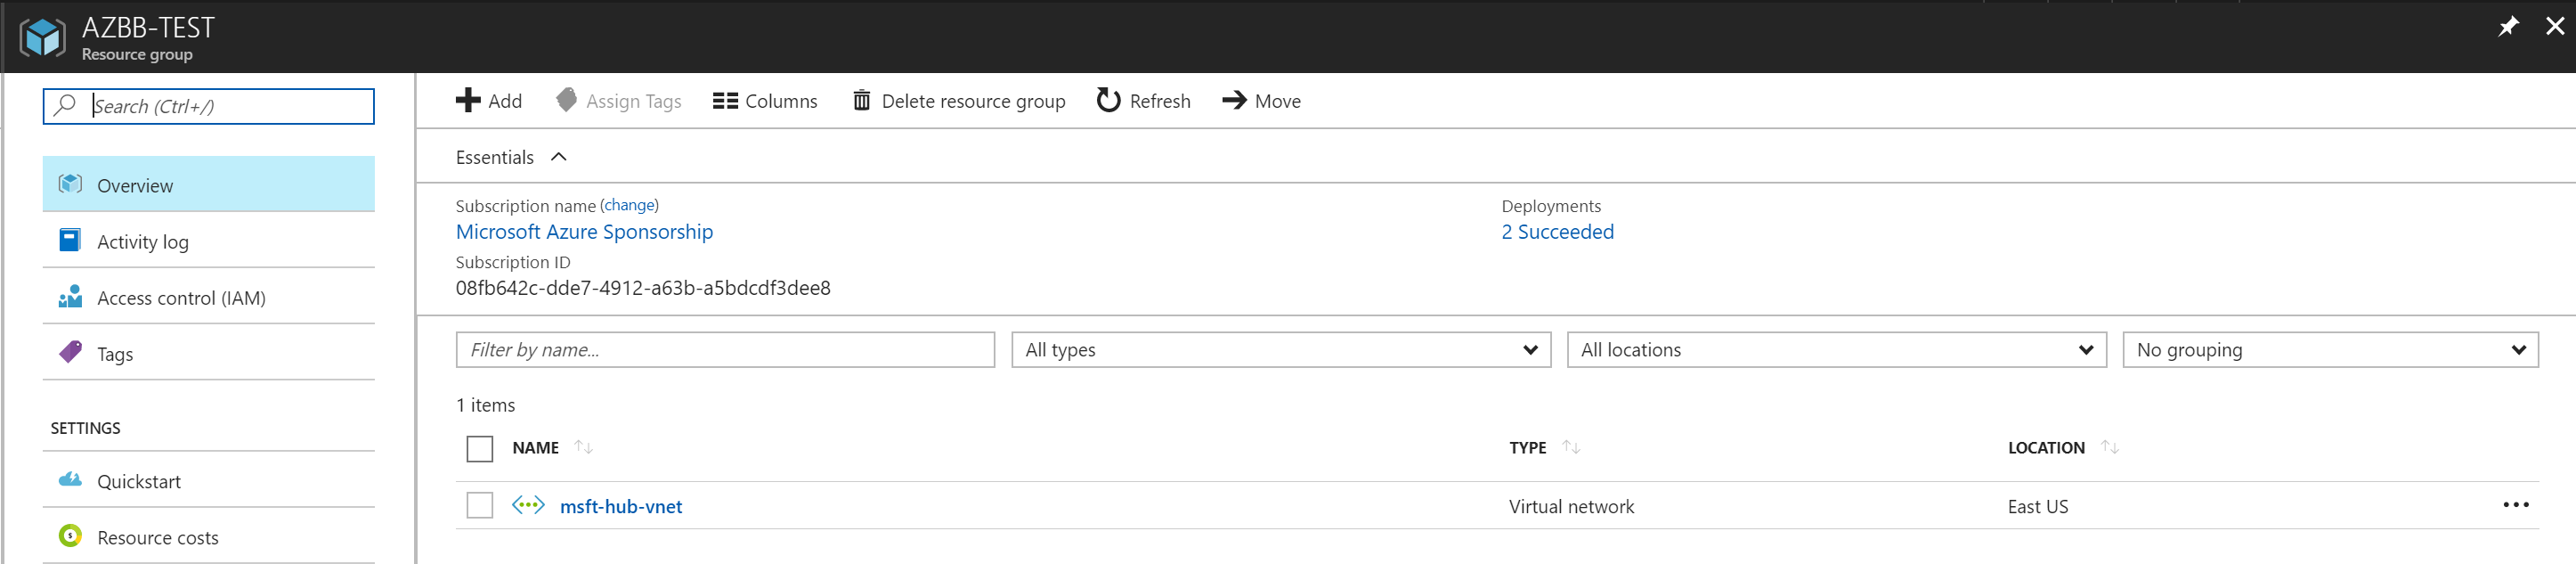 Azure Building Blocks - Deployment Results